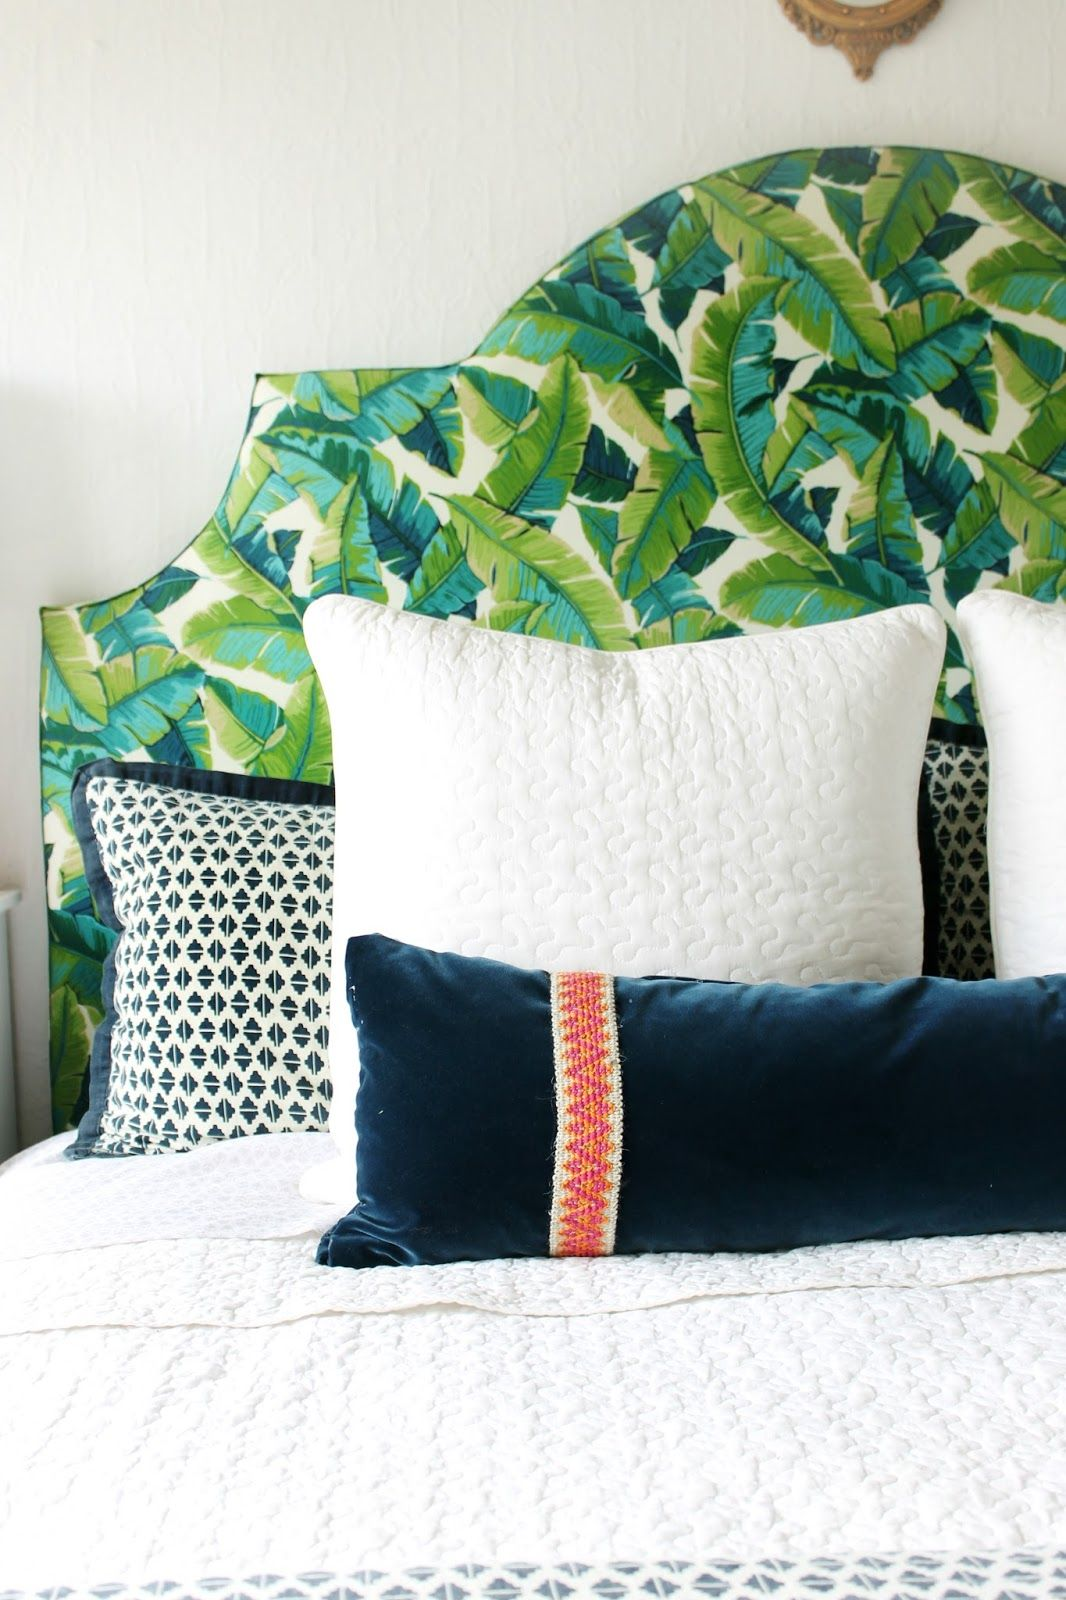 7 diys to fuel your tropical home decor addictionturn your home into a tropical paradise with these seven decorating ideas!